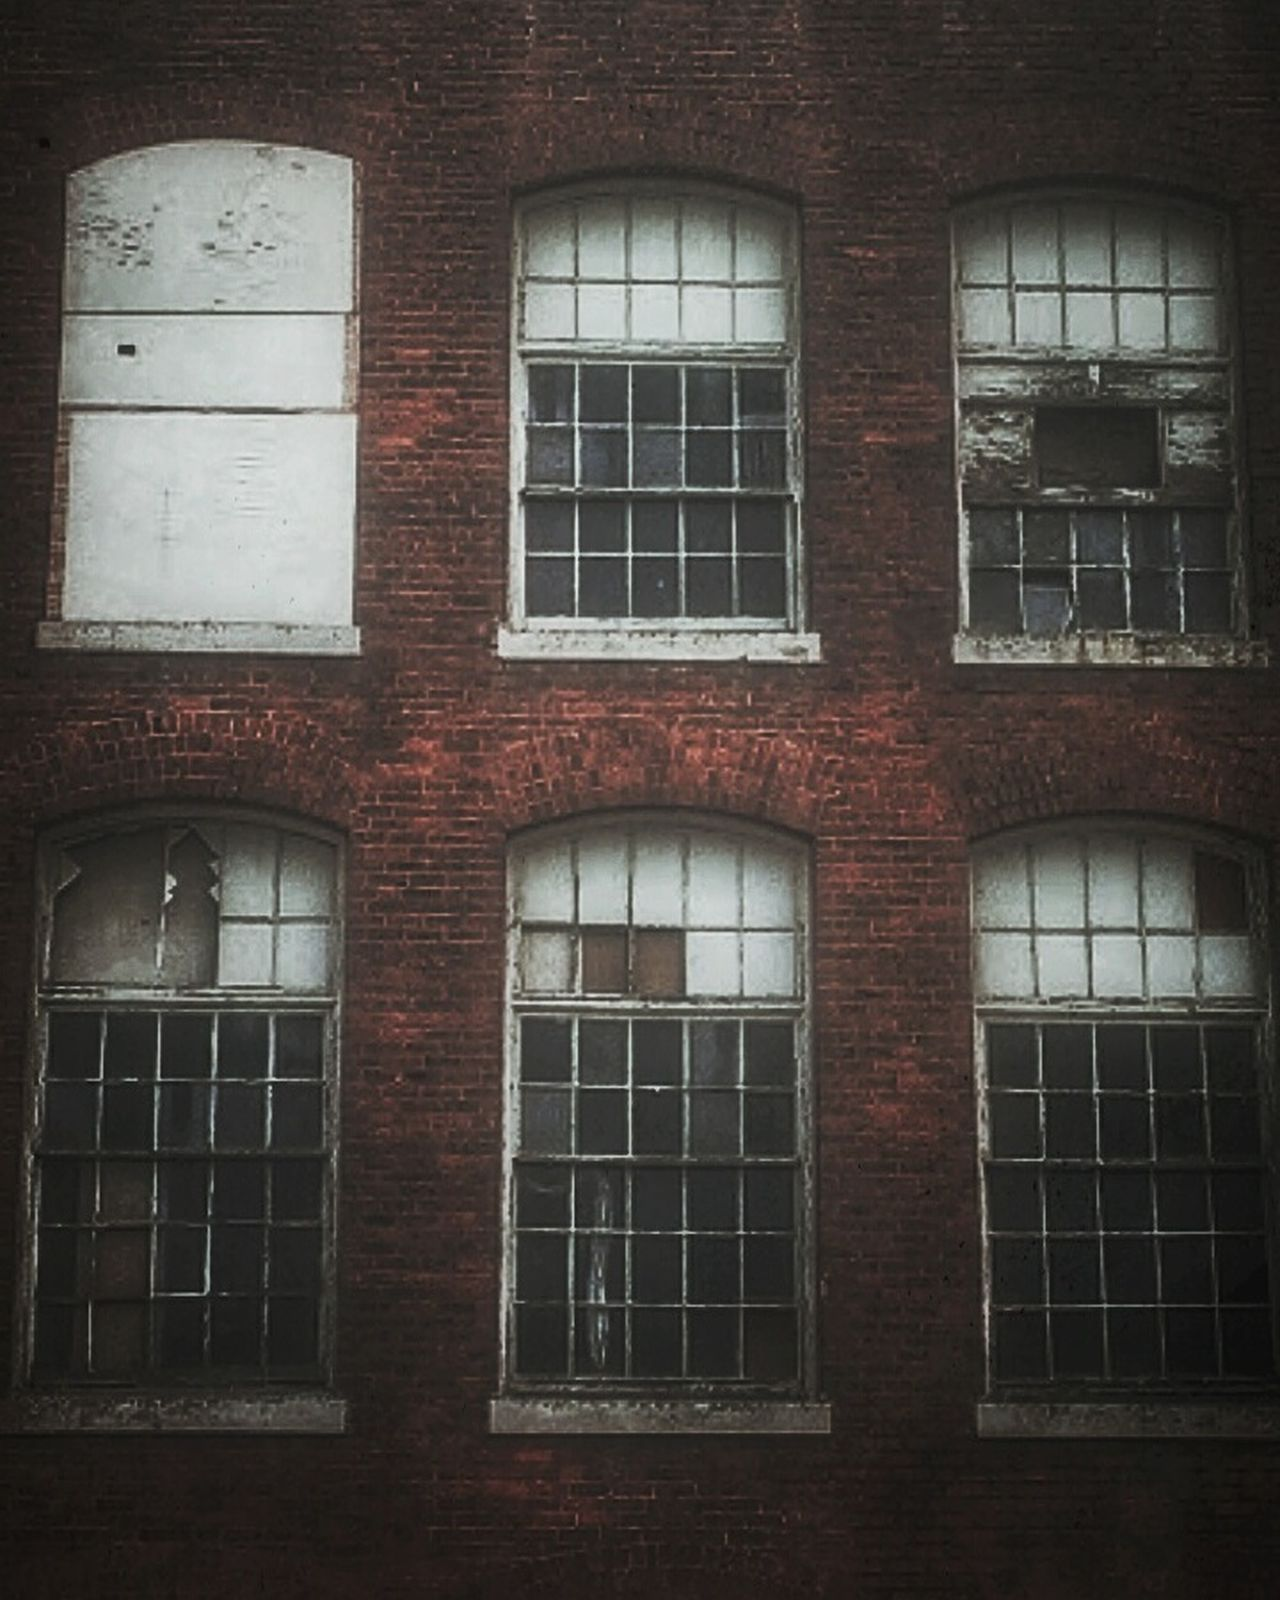 Come Together...Right now...Over me... -- The Beatles Window Architecture Architecture Creepy Houses AMPt - My Perspective Creepy Building Built Structure Abandoned Urbanphotography Broken Window AMPt - Street EyeEm Gallery Abandoned Buildings Building Exterior Weathered Urbexphotography Creepy Atmoshpere Bad Condition Brick Wall BOB Brick Old Building Brickporn EyeEm_abandonment